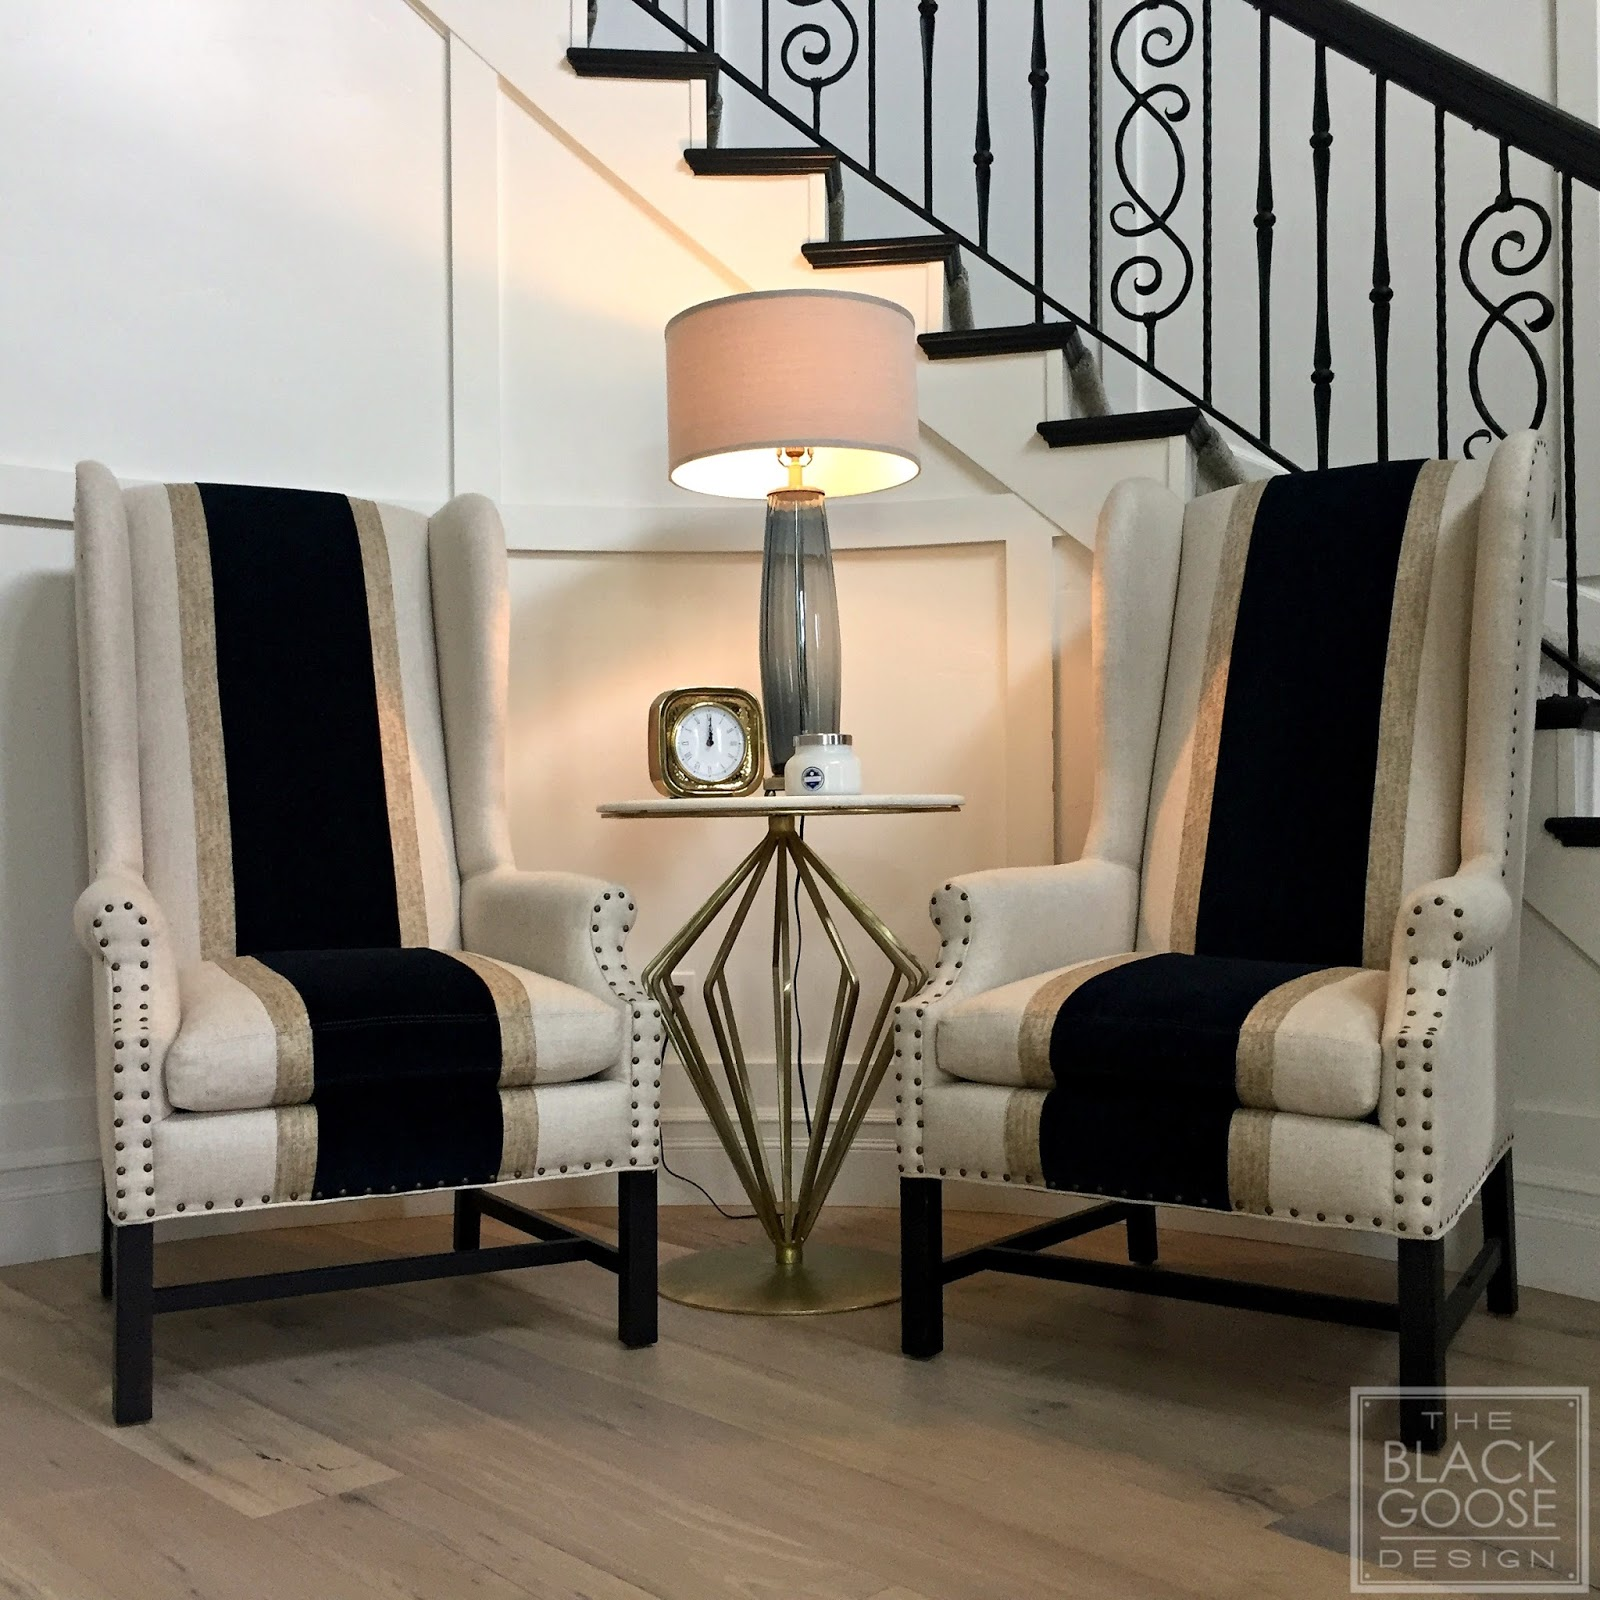 The Black Goose Design: Interior Designer Spotlight: Ellie